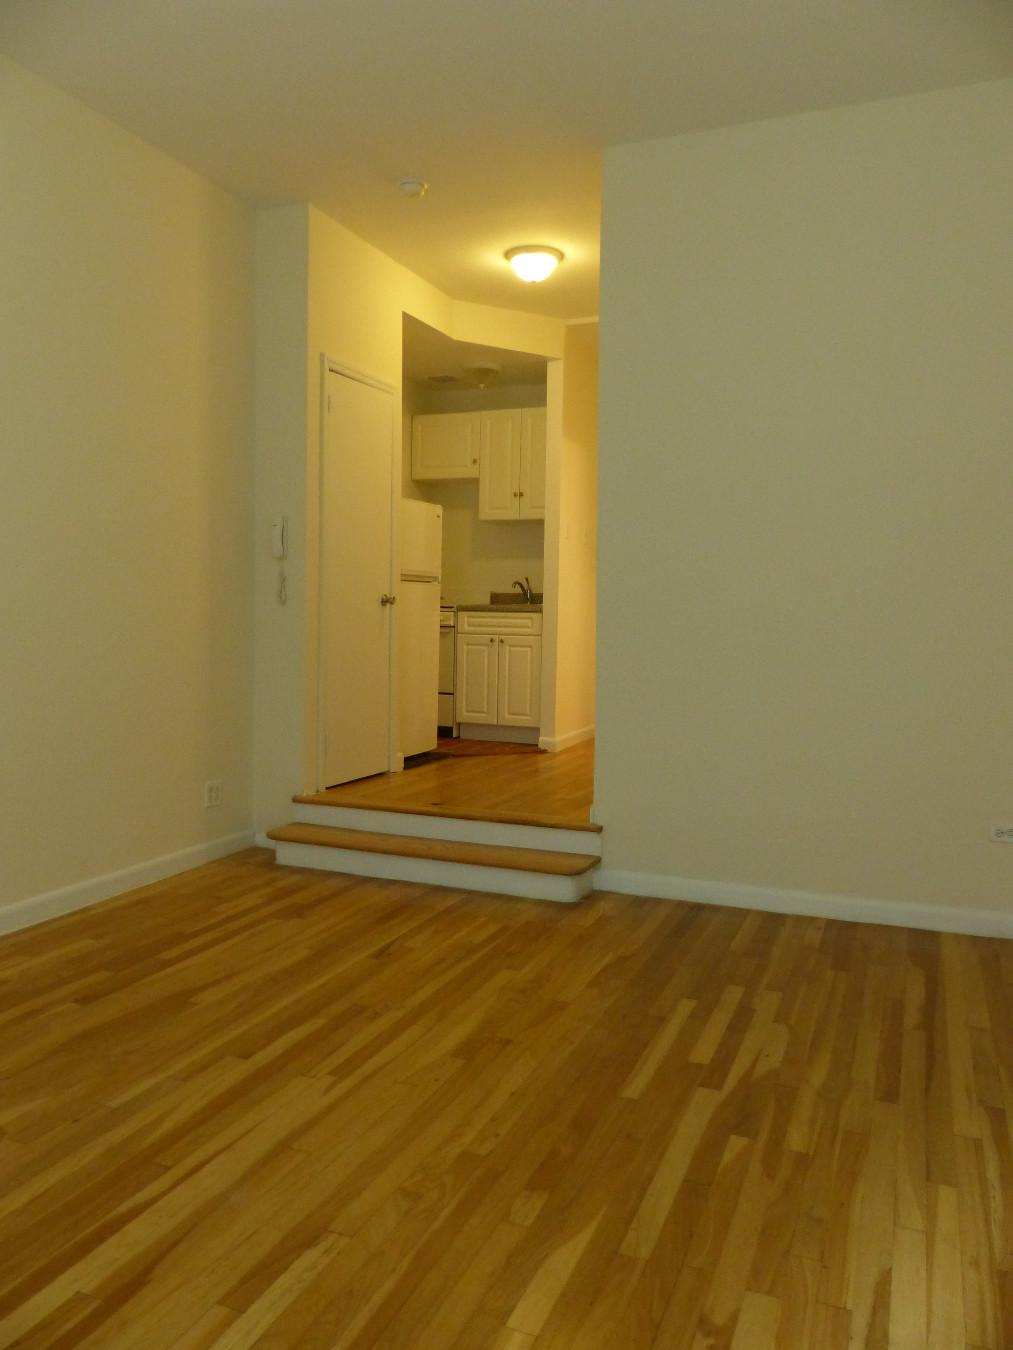 NYC Apartments: Upper West Side Studio Apartment for Rent